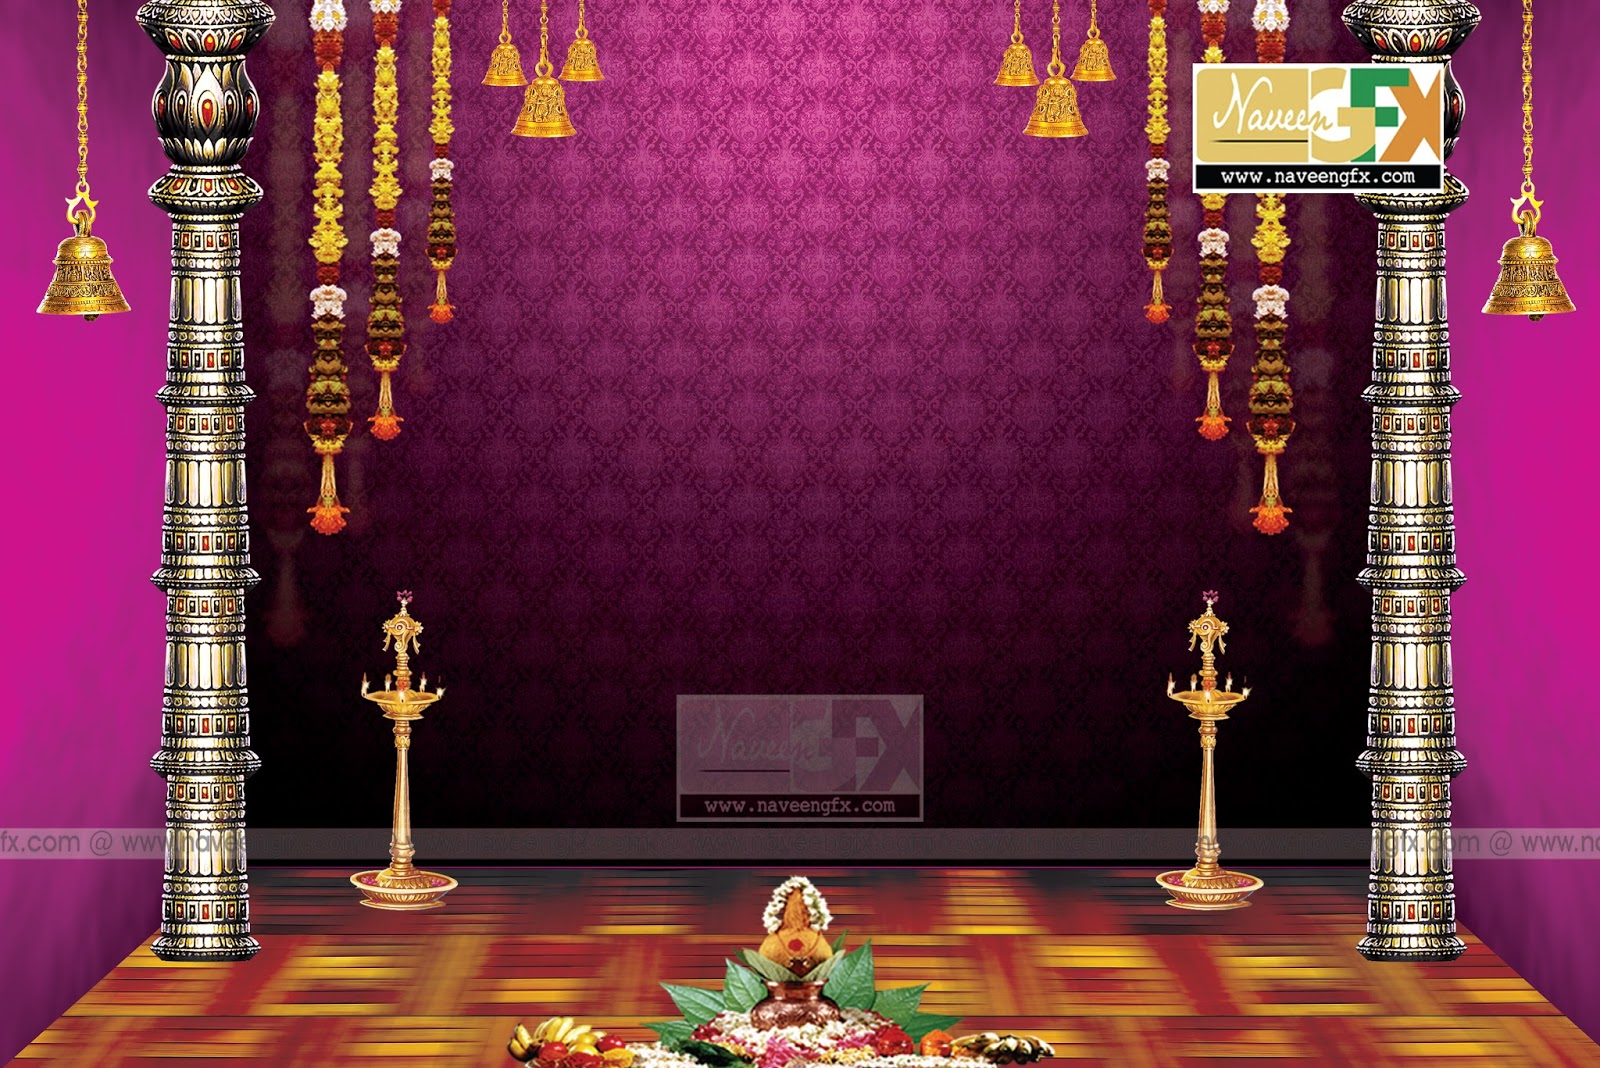 Vinayaka chavithi stage backdrop idea template naveengfx for Background decoration for ganesh festival